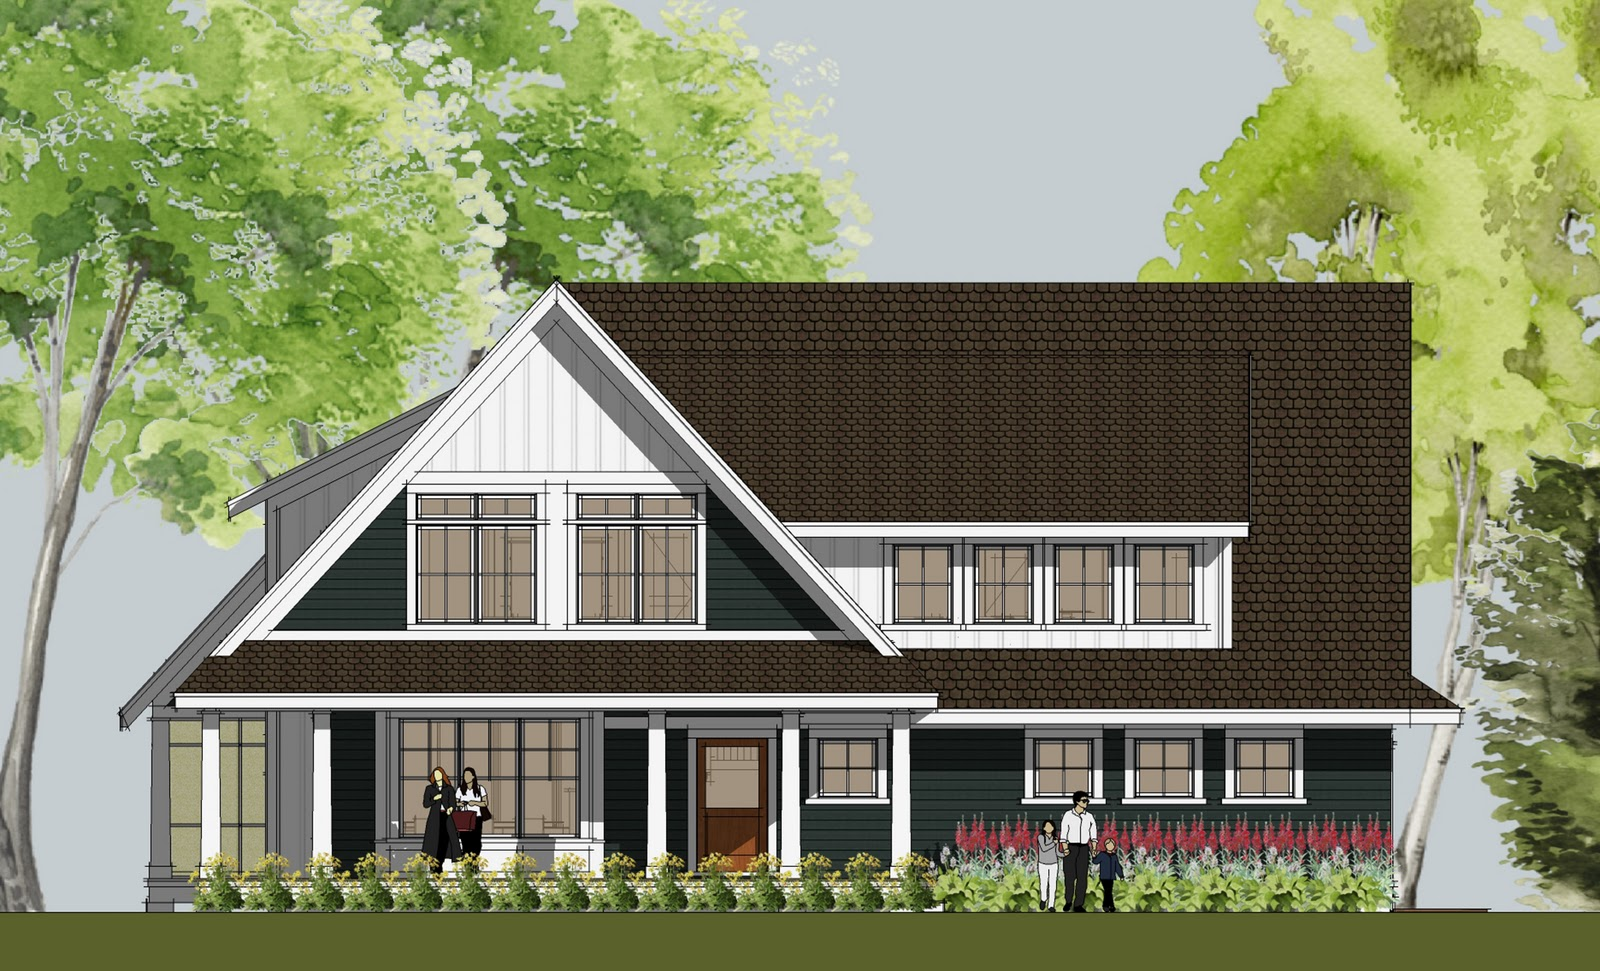 Simple elegant house plans ideas photo gallery house Elegant farmhouse plans